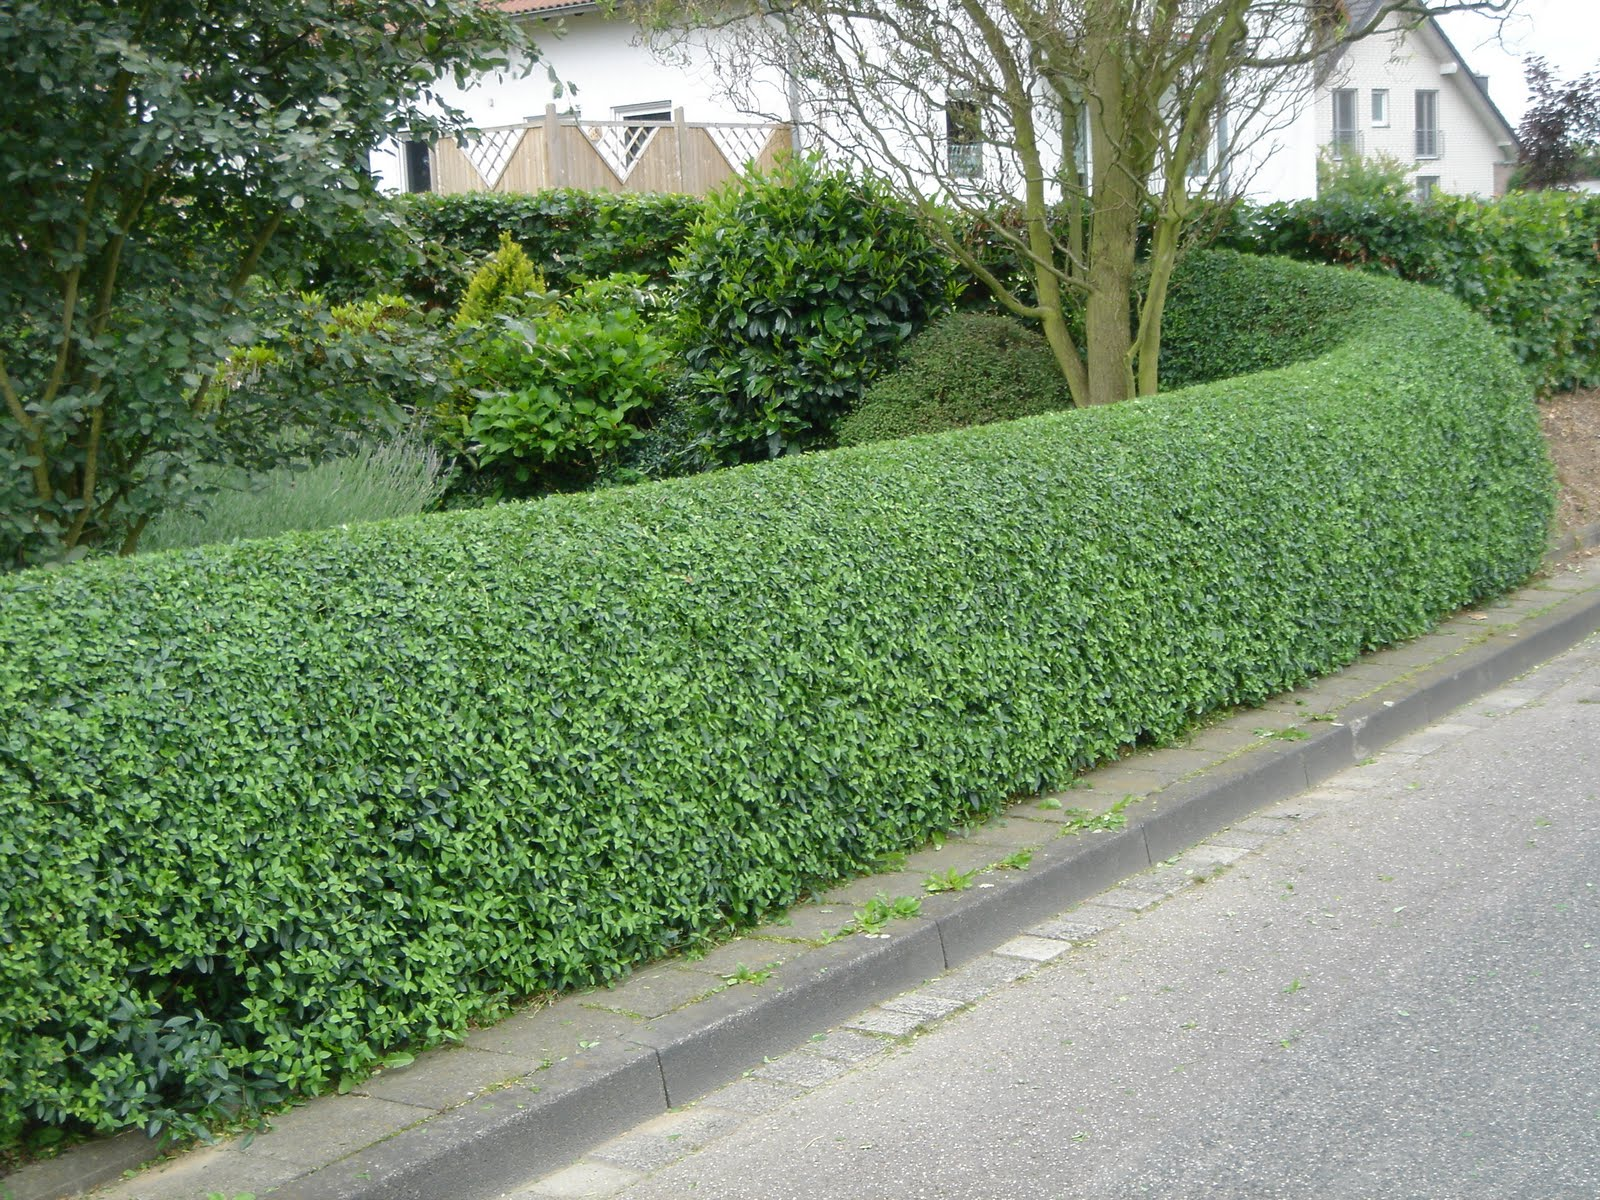 Hedging replacement advise what hardy plants to use for hedging